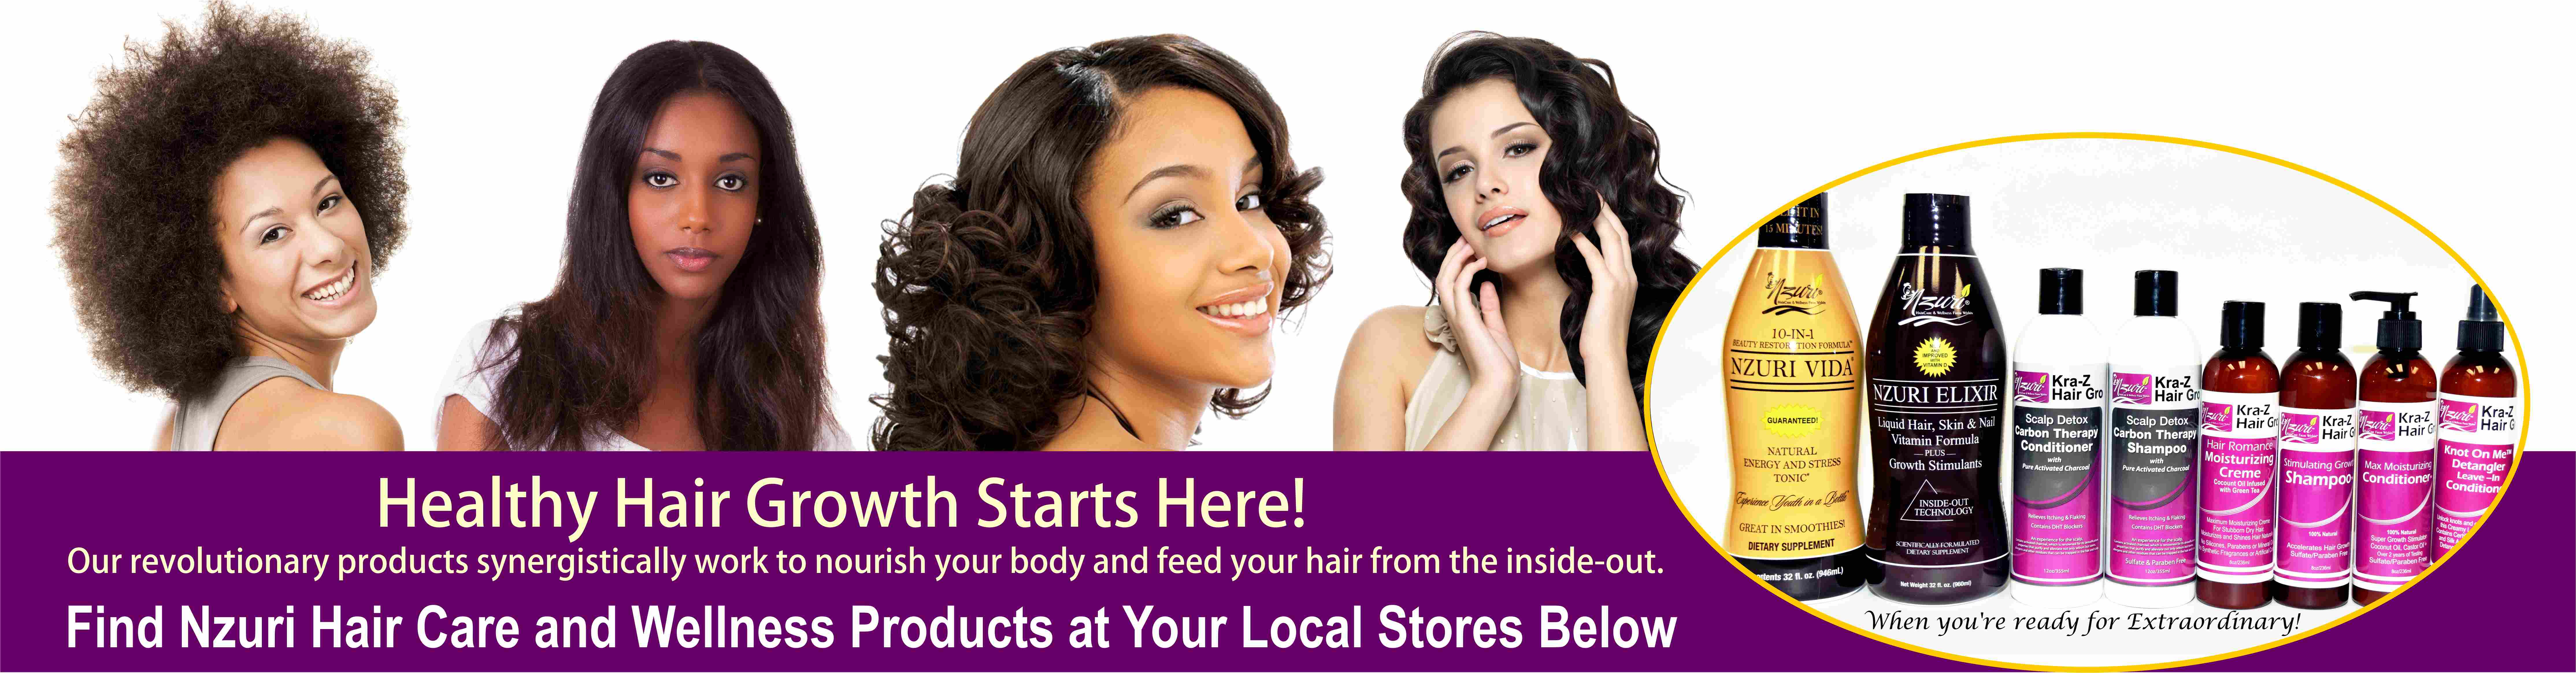 Nzuri Hair Care and Wellness Products at local store